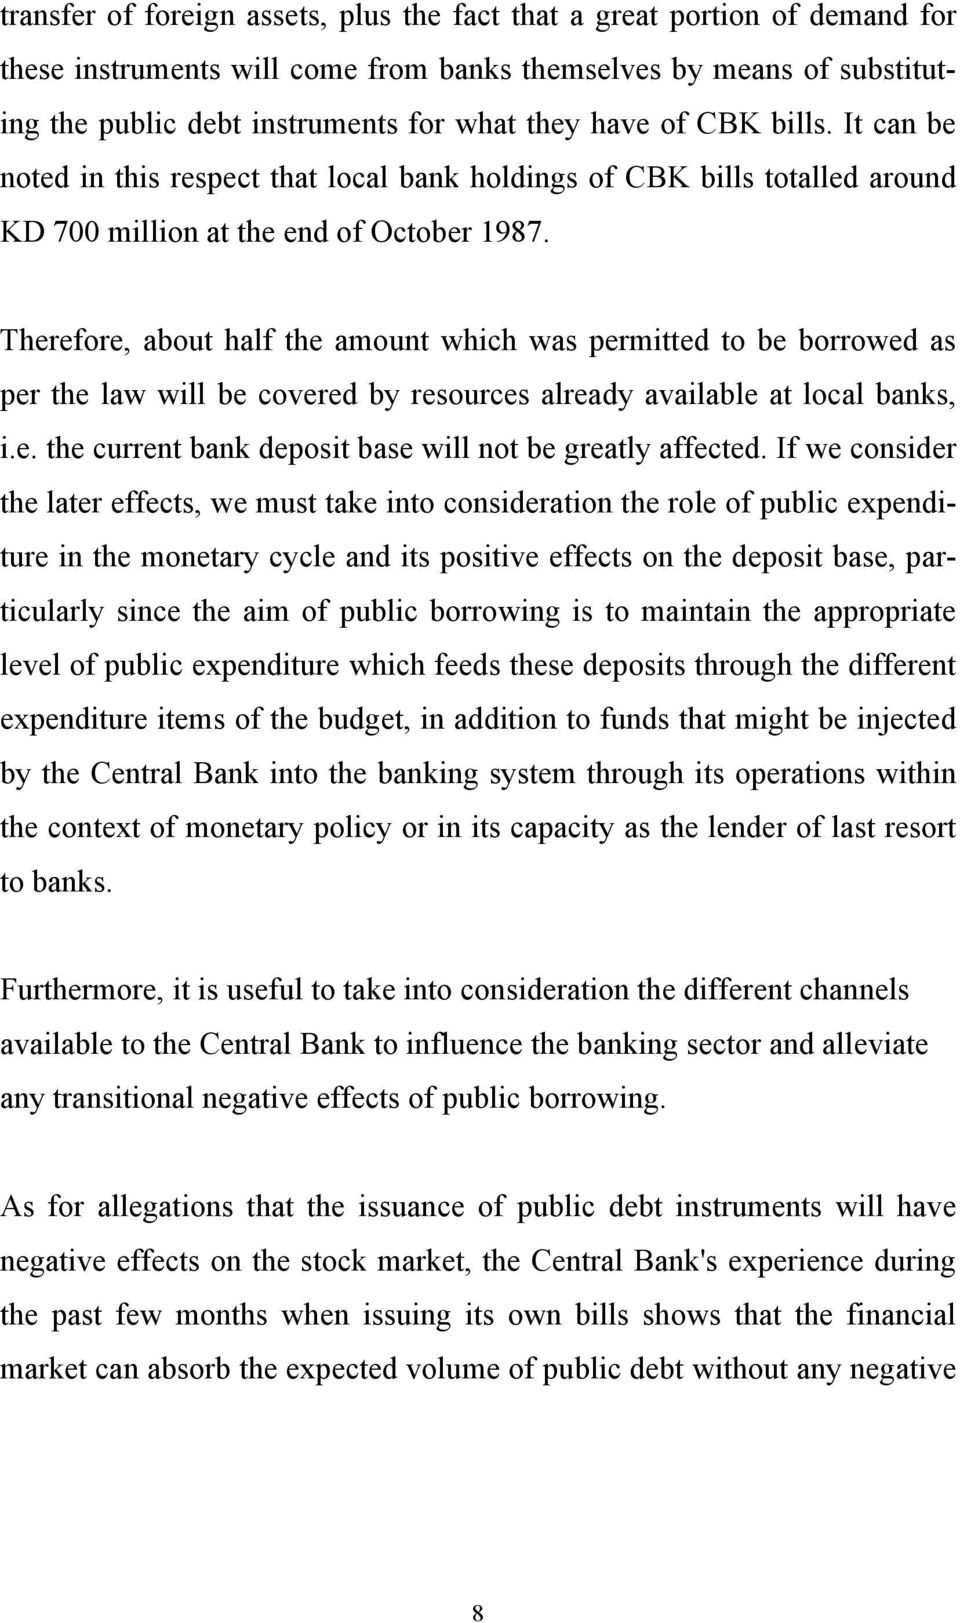 Therefore, about half the amount which was permitted to be borrowed as per the law will be covered by resources already available at local banks, i.e. the current bank deposit base will not be greatly affected.